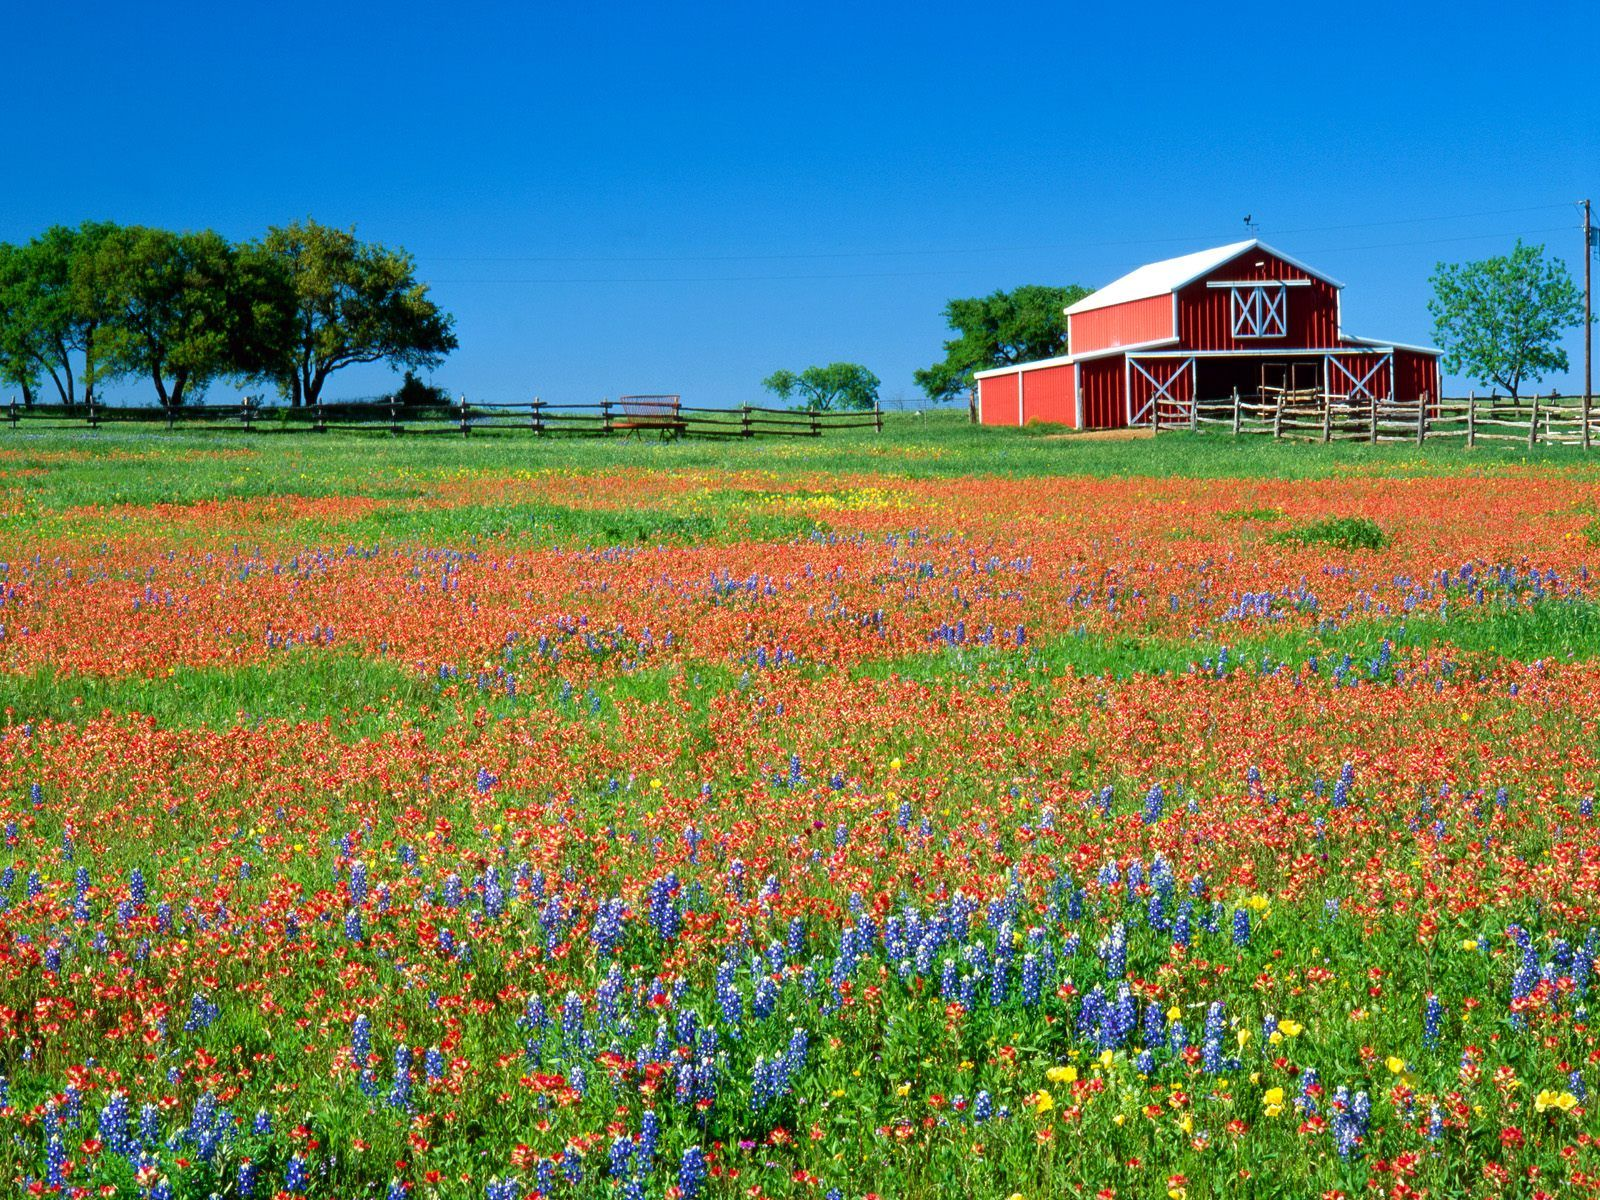 Home Barn, Big red barn, Wild flowers